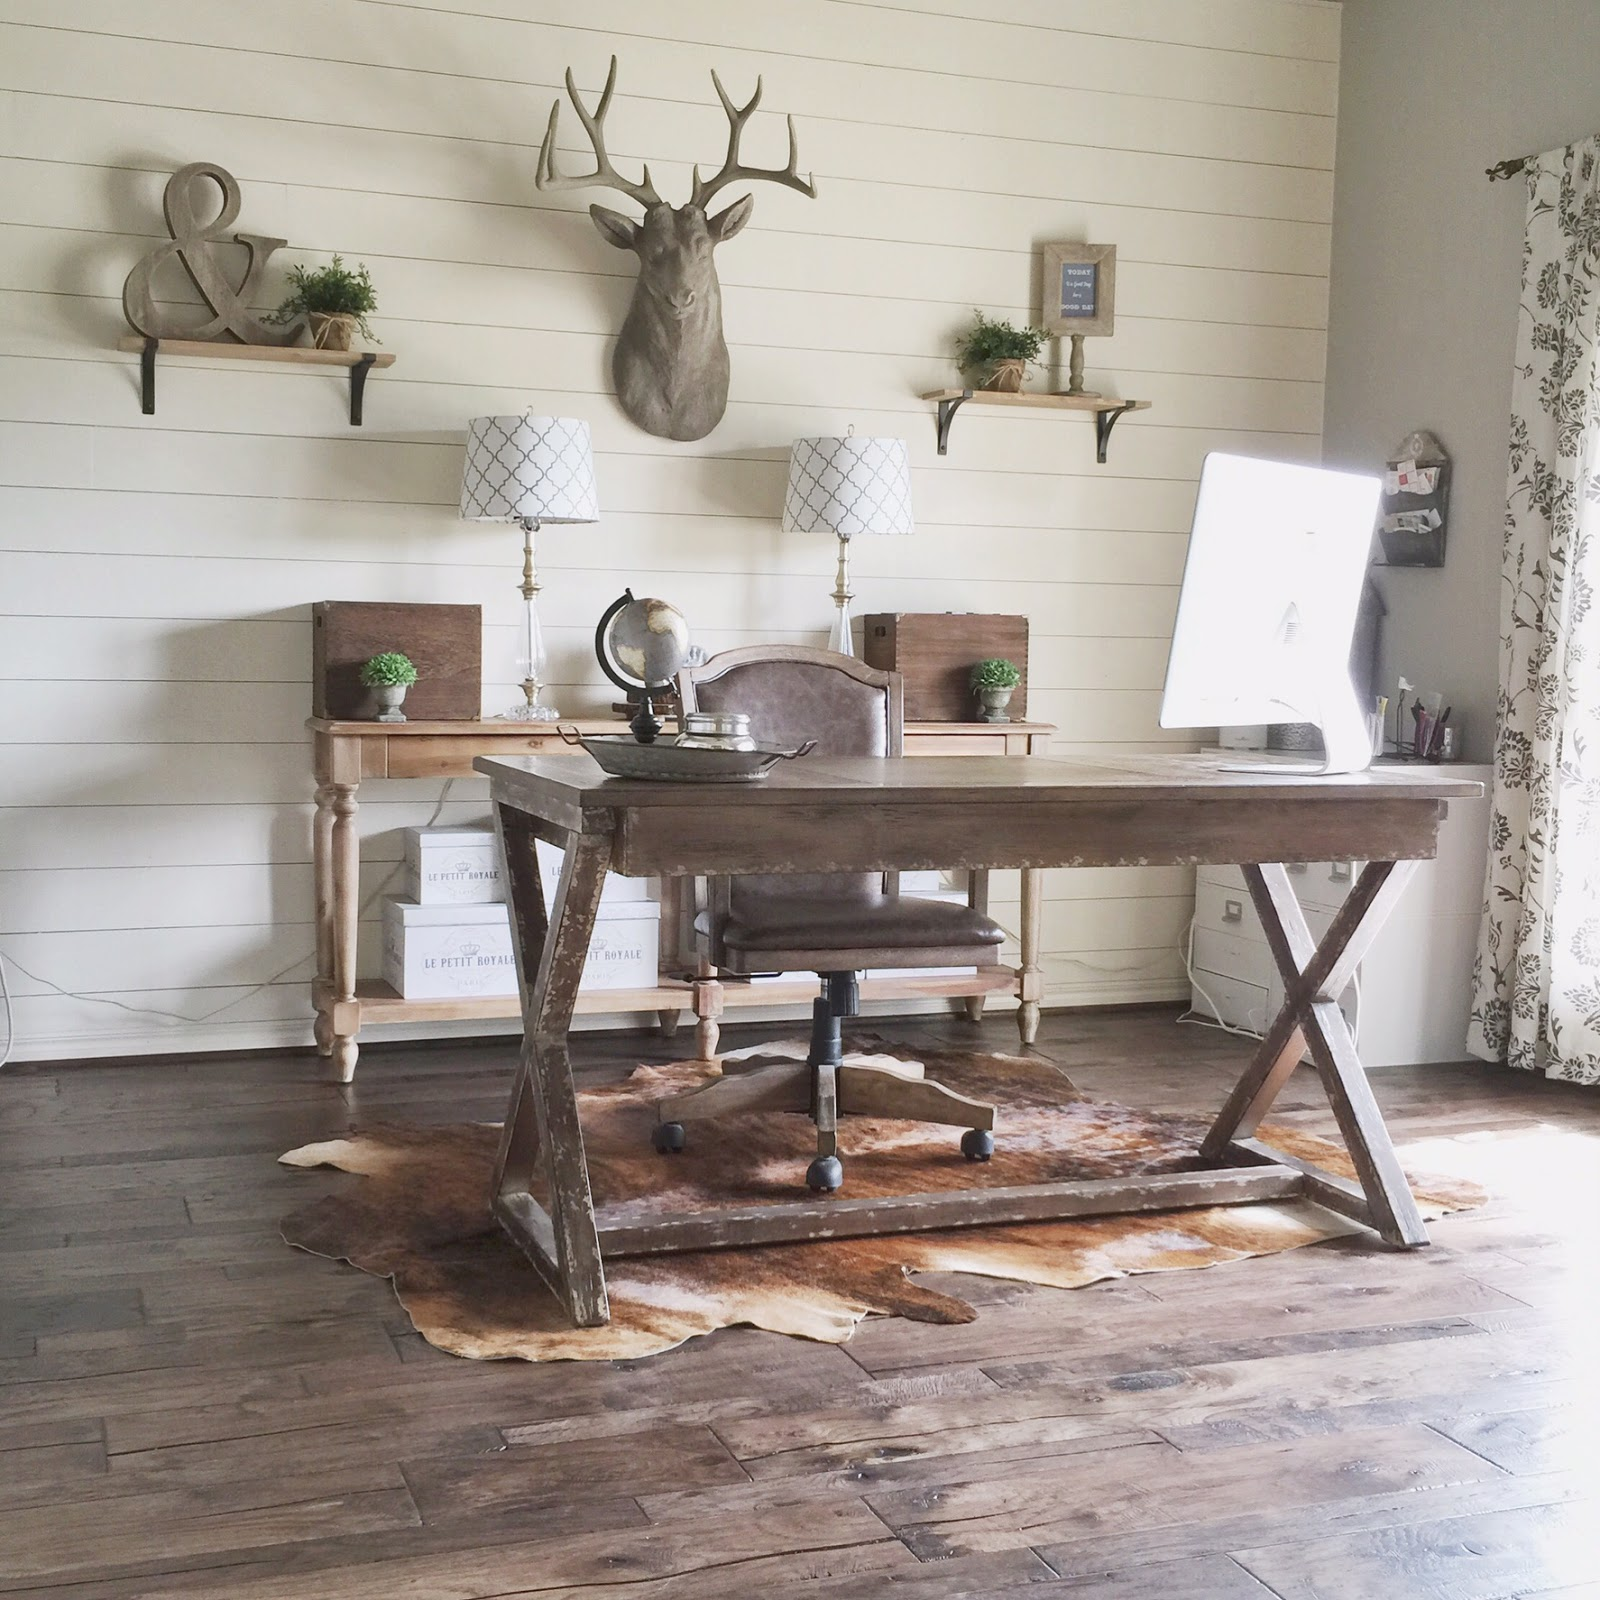 wood floor office. Wood Floor Office. Home Office Makeover (Wood Update) E